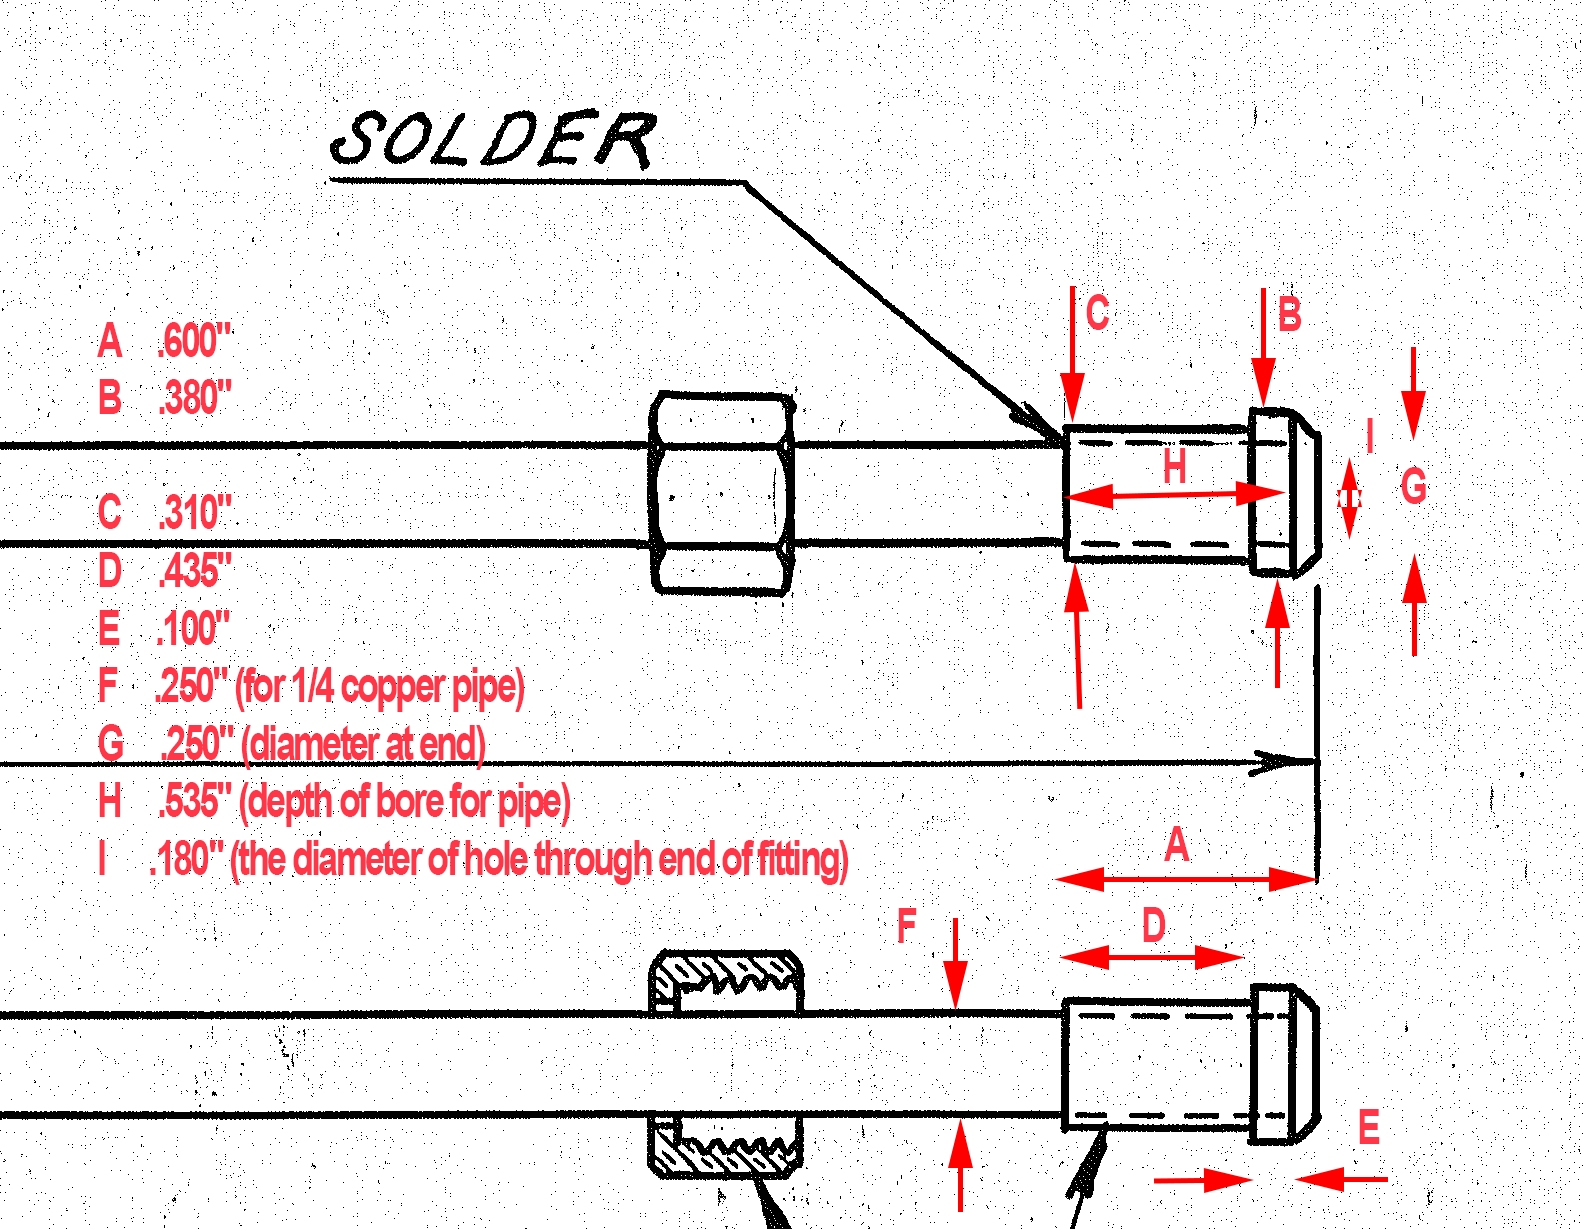 hight resolution of 58cc2746c9c19 soldernippleforpipe thumb png afdffaa1403ac2a24bd366db7a645019 png